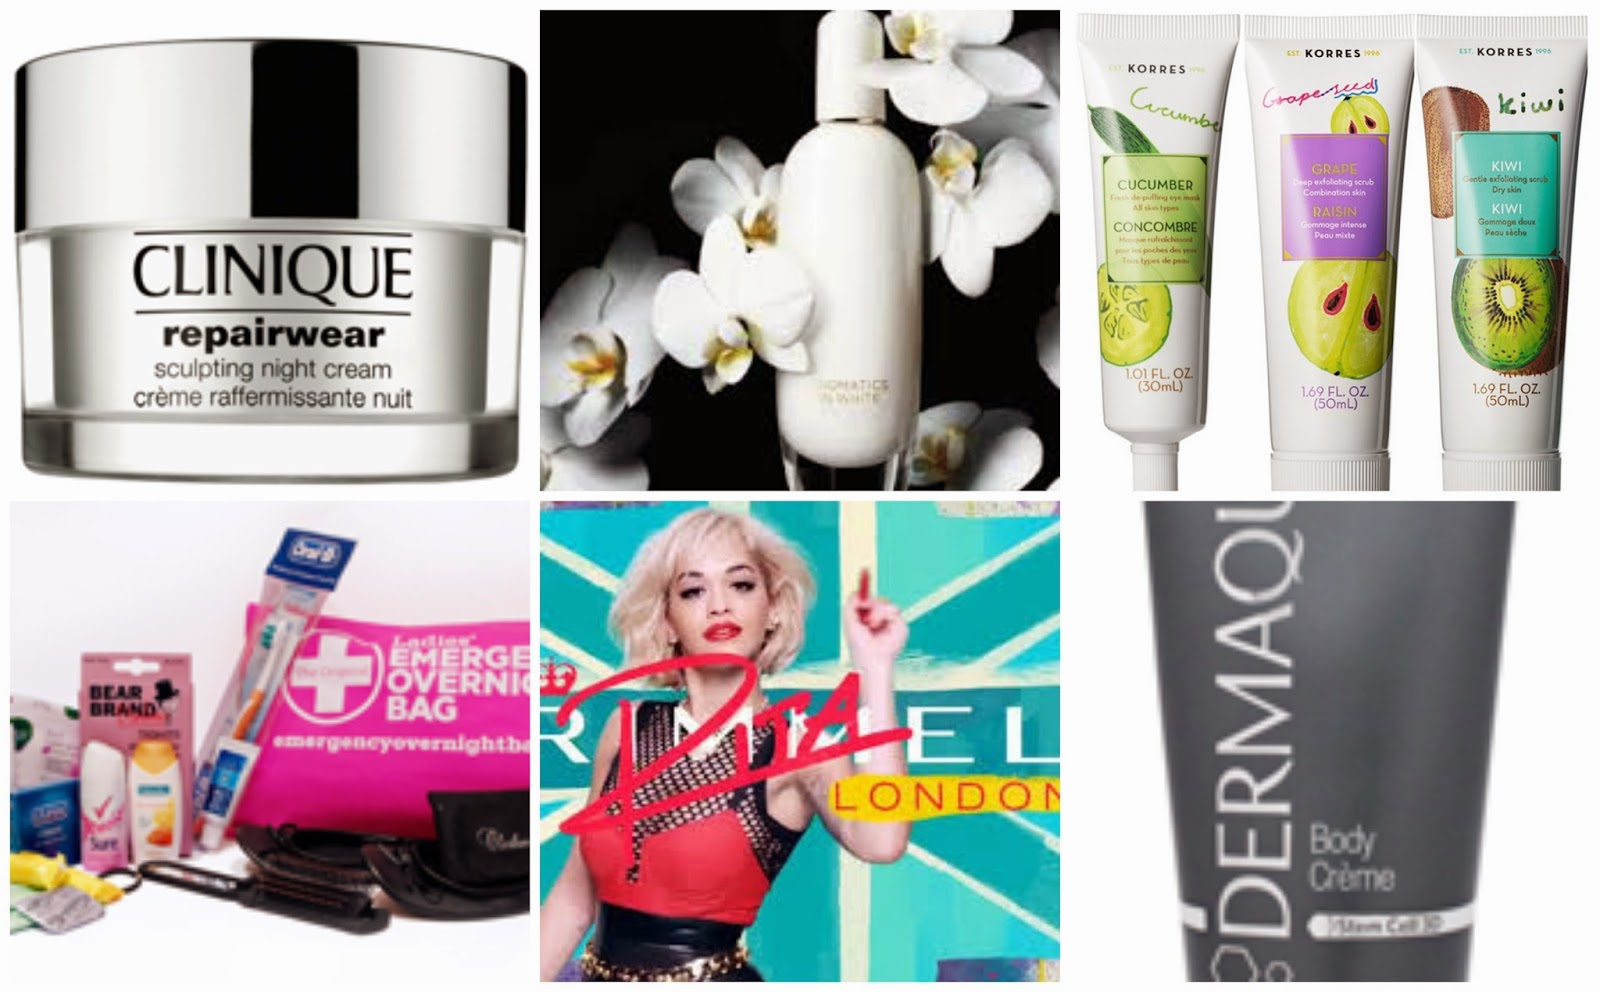 The Daily Beauty Report (03.12.14)